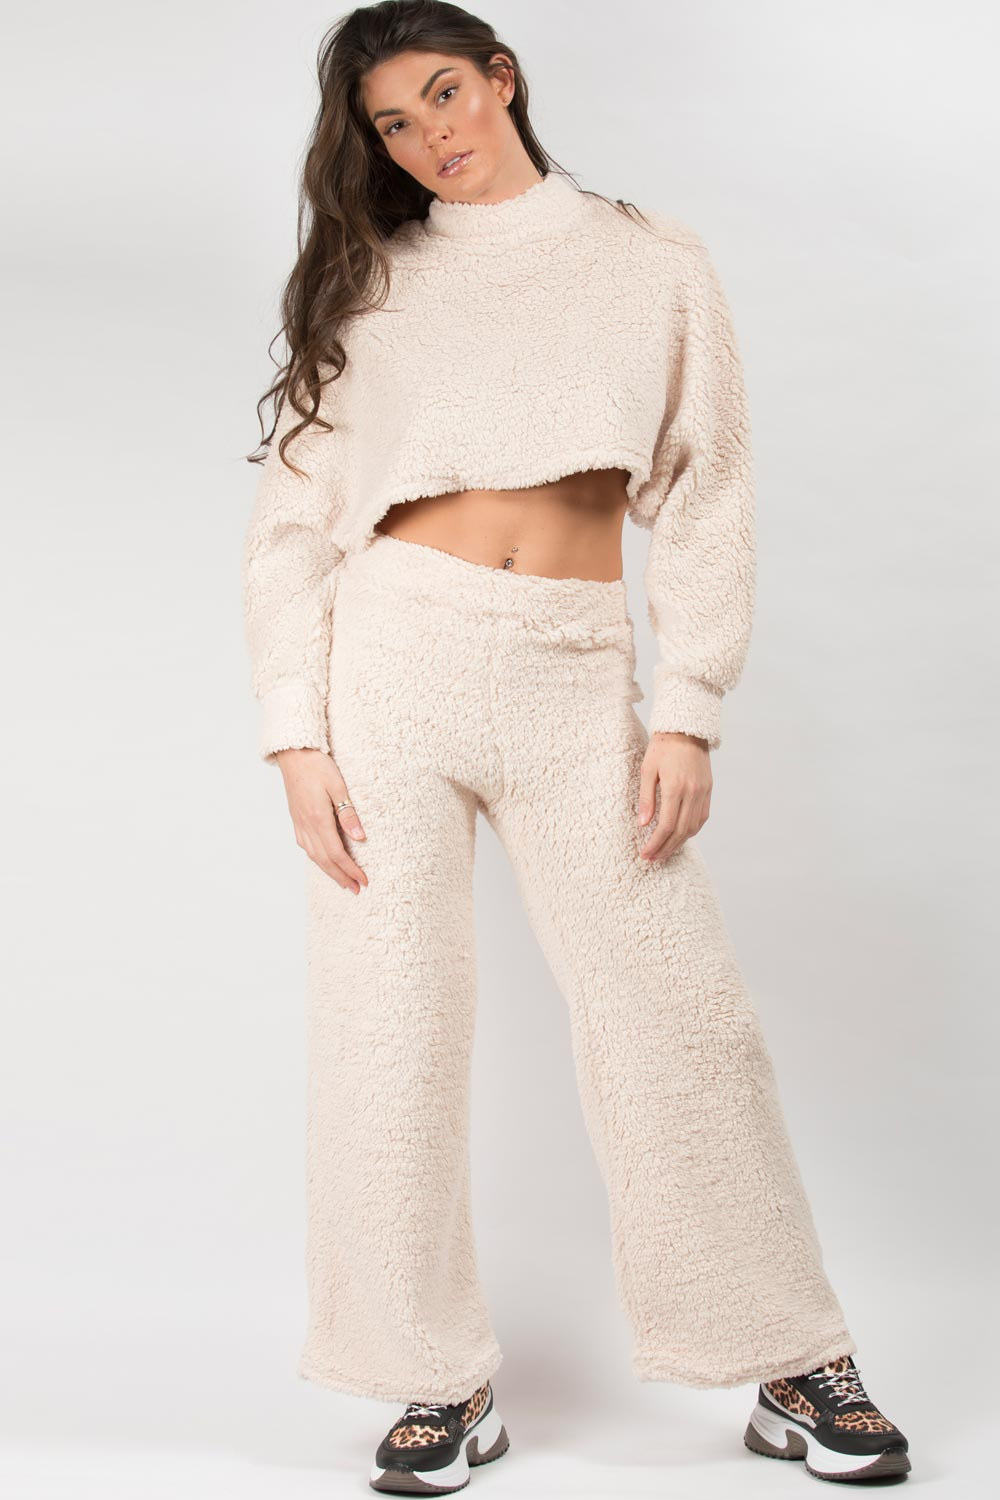 loungewear teddy bear trousers and crop top set